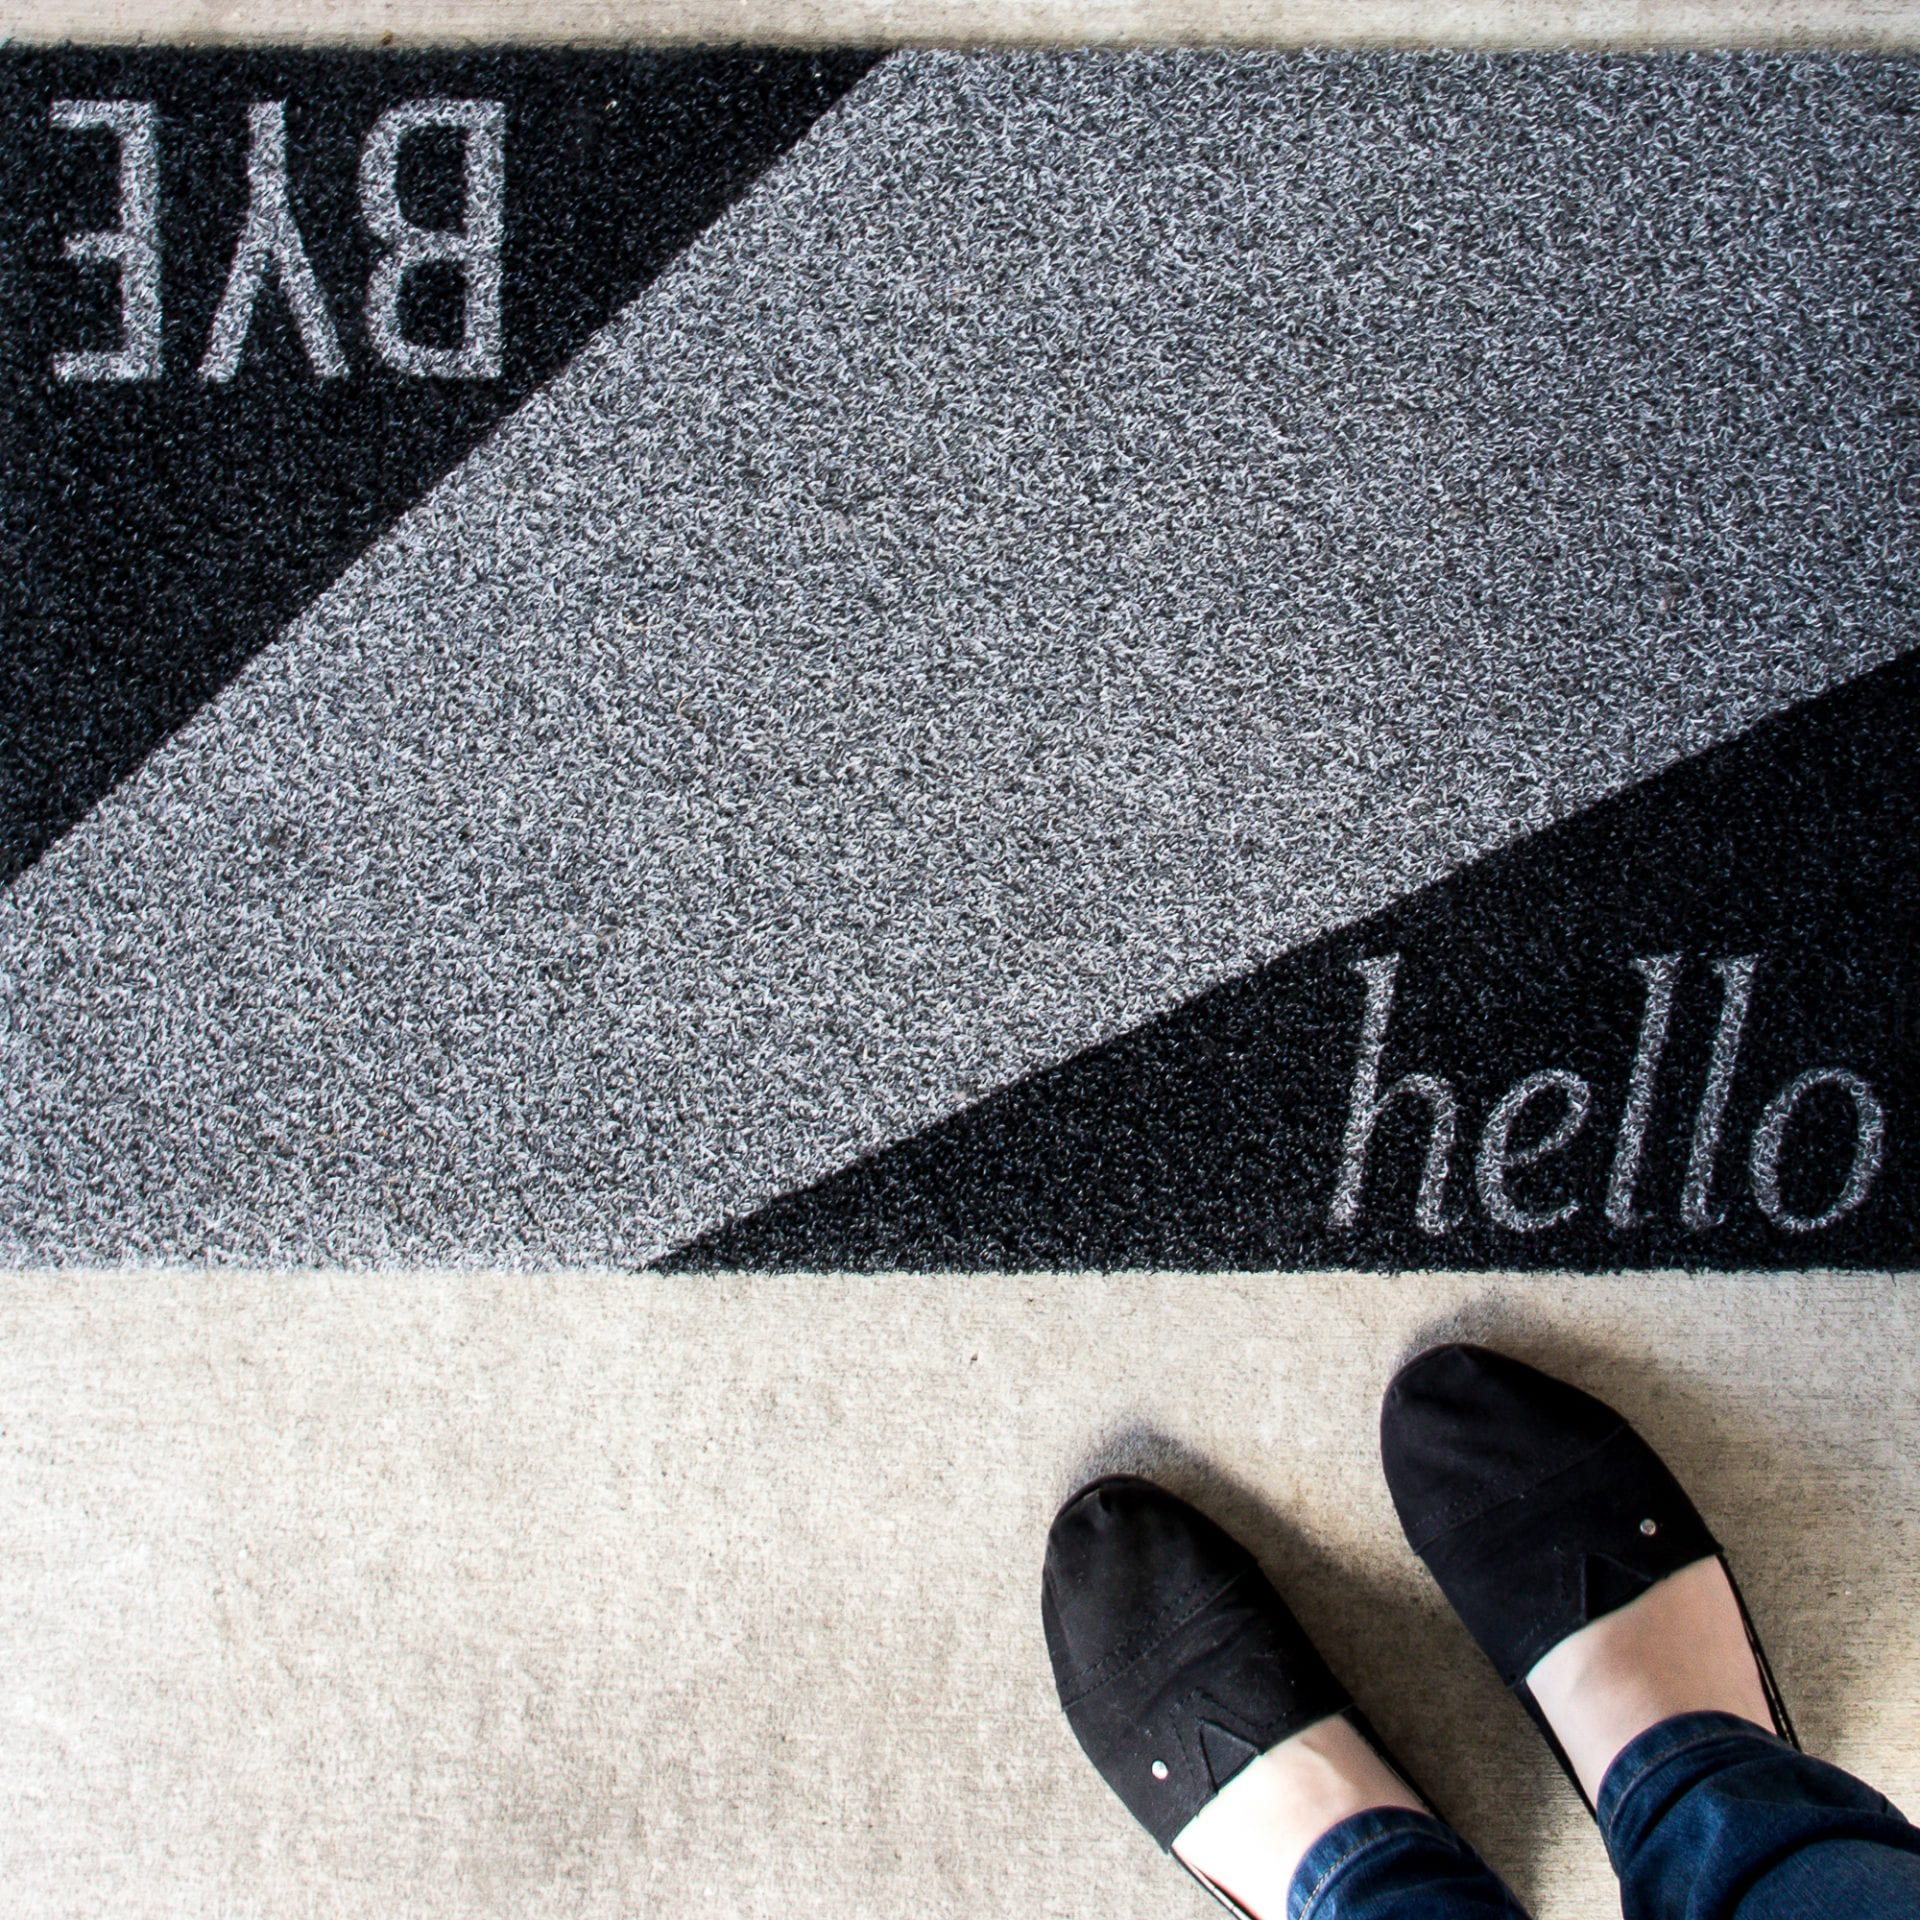 housewarming see a door gift wedding welcome custom outdoor mats you and mat modern hand home nice to welcoming painted hello too doormat pin cute